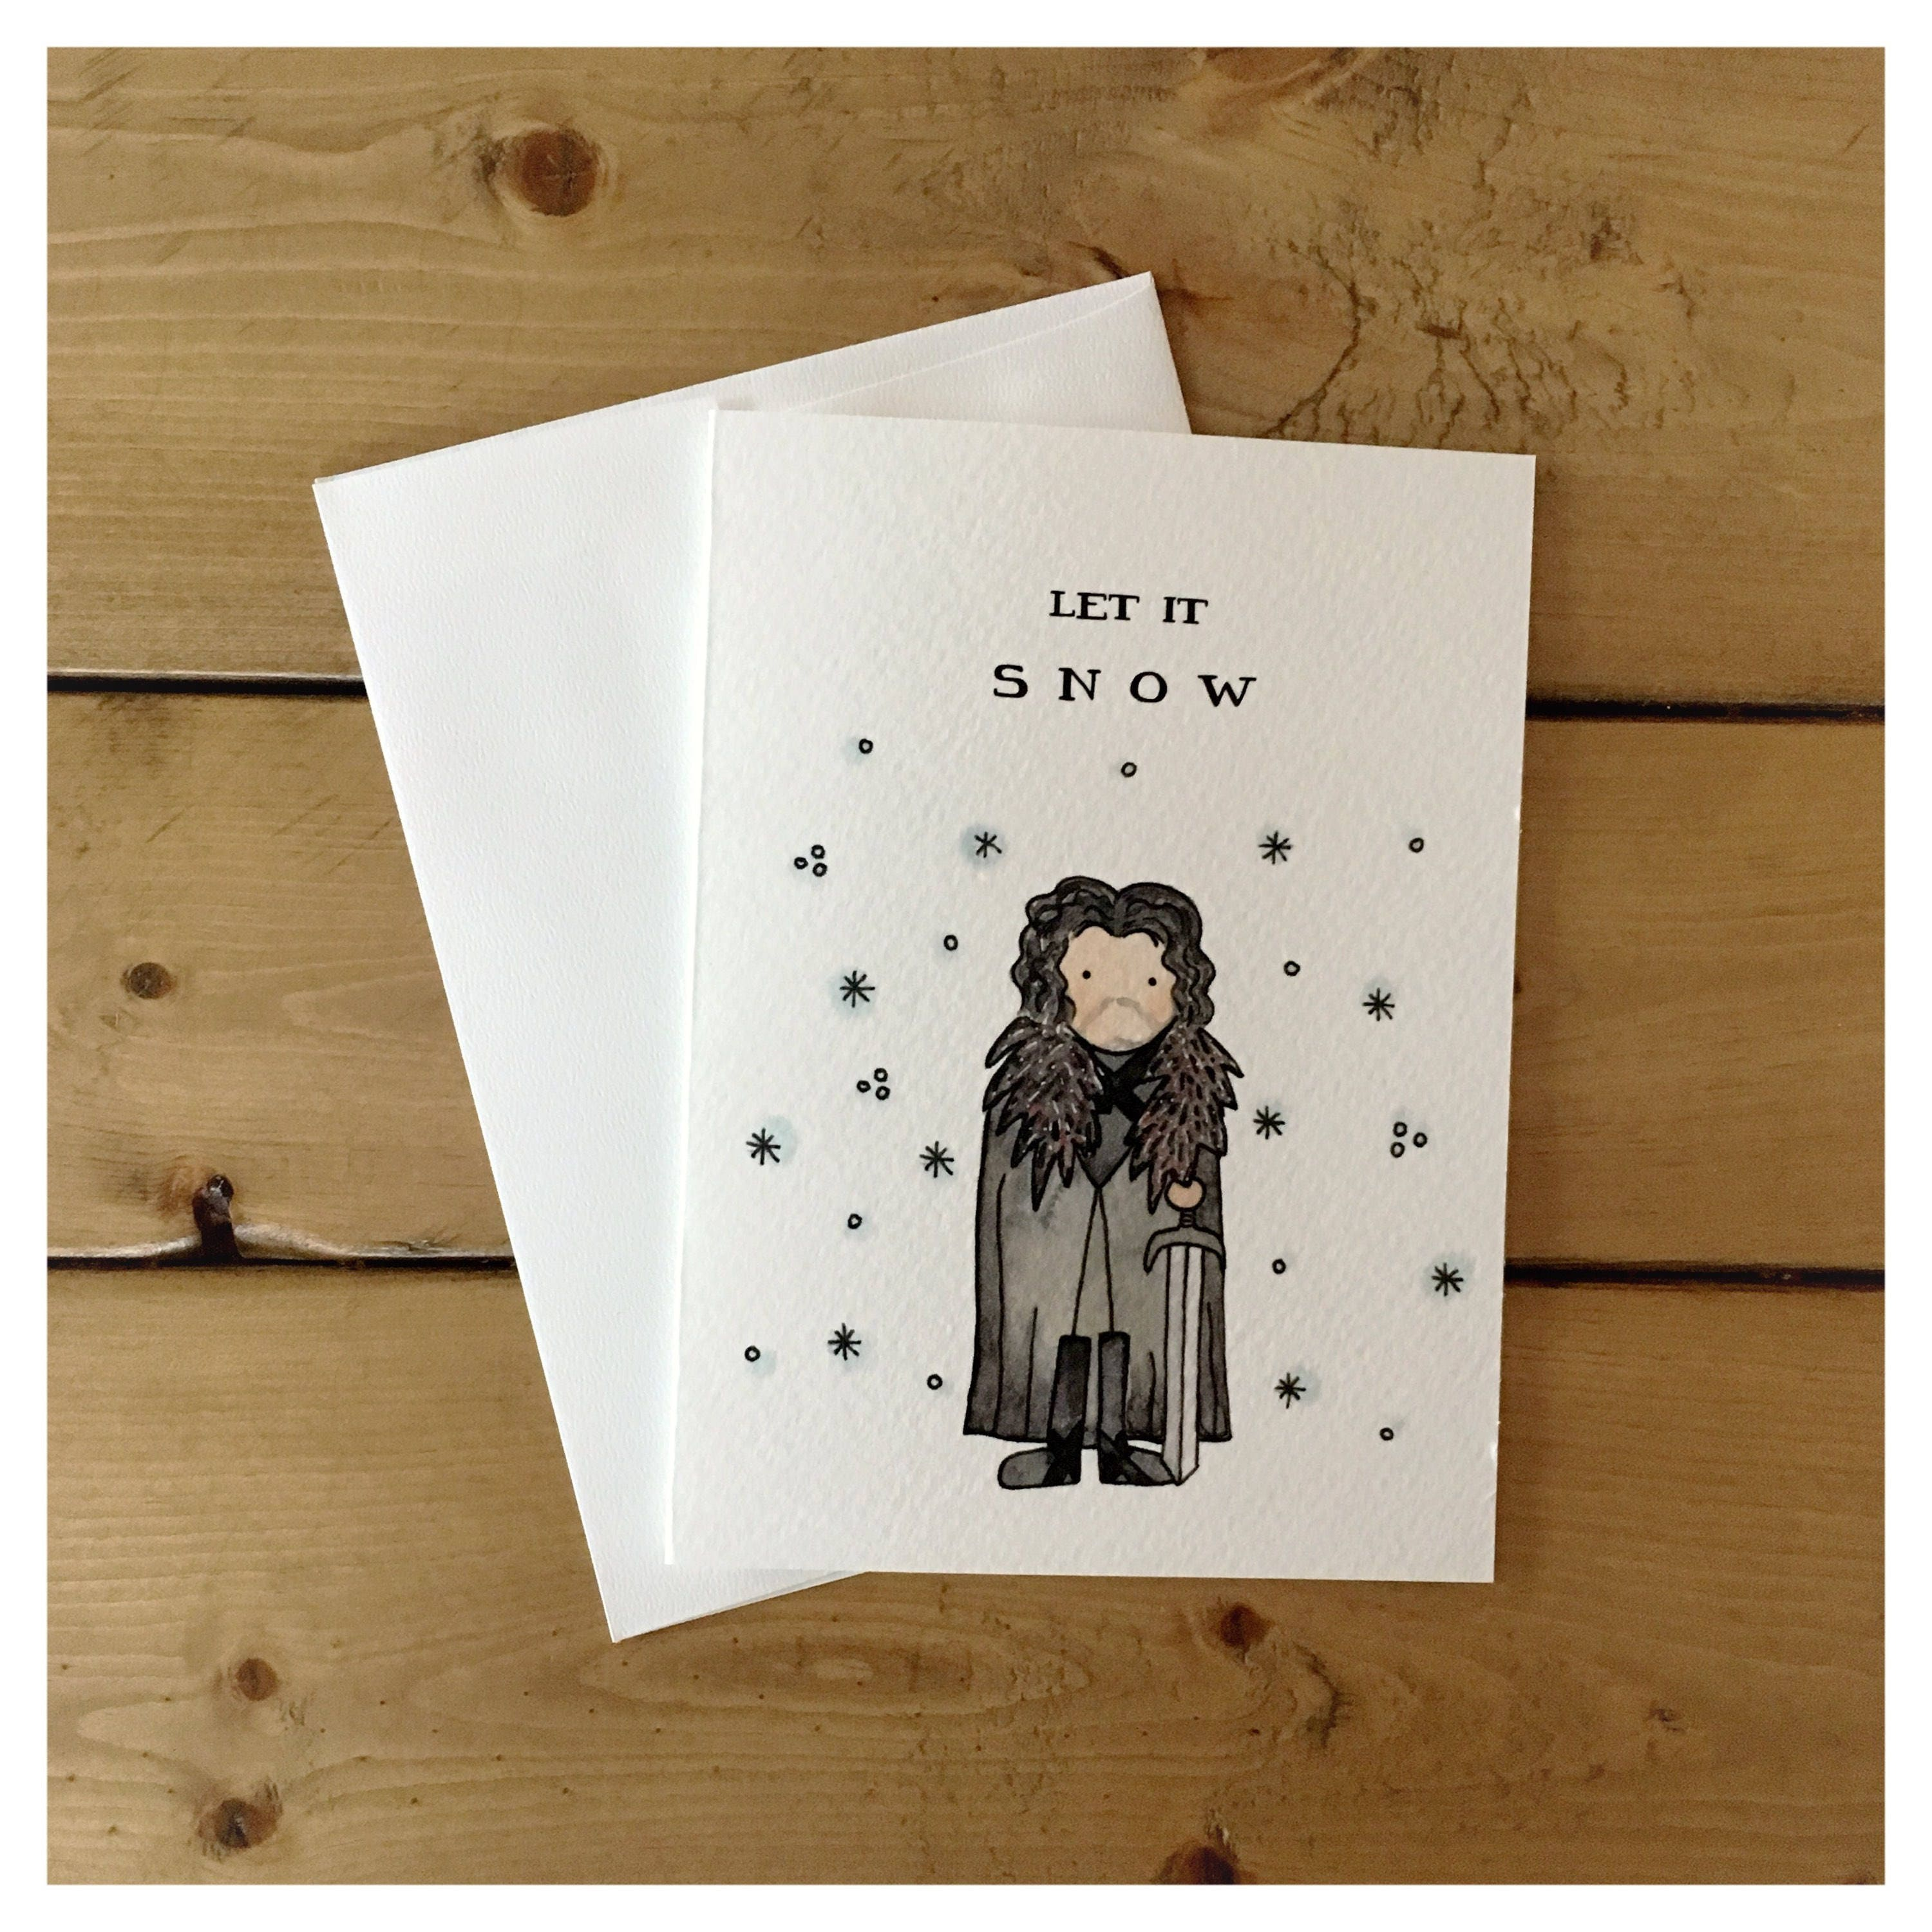 Let it snow jon snow game of thrones pun funny card christmas gallery photo gallery photo gallery photo m4hsunfo